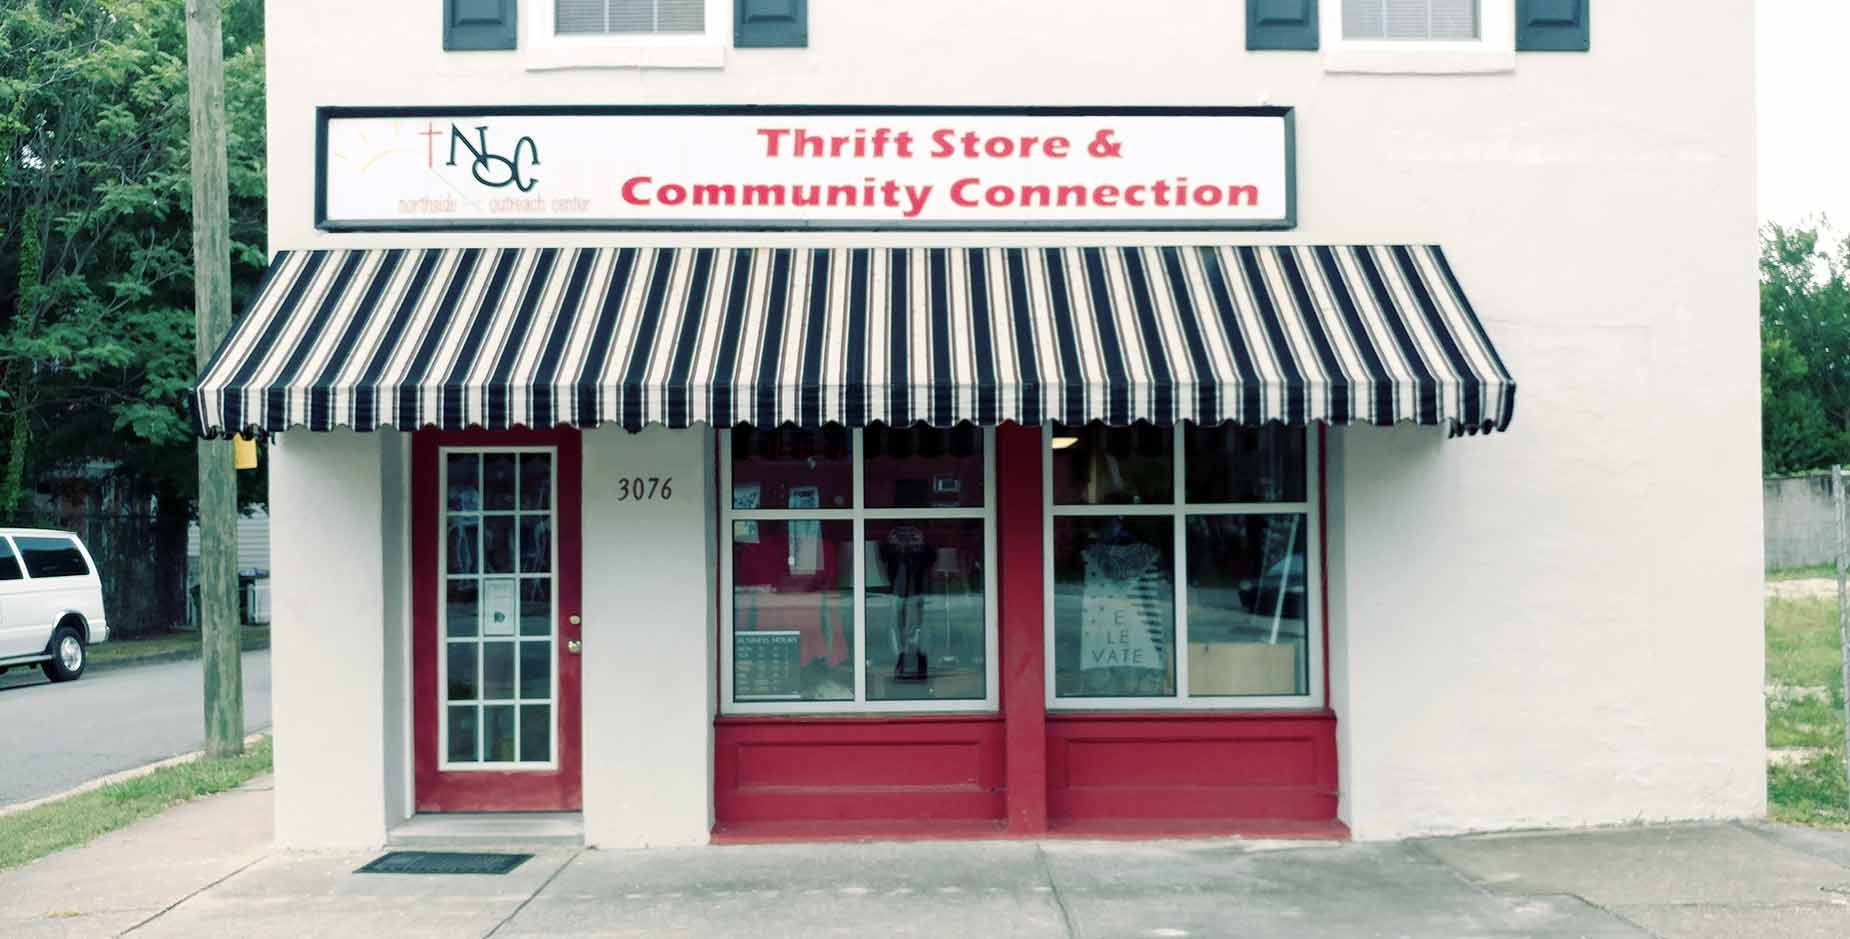 The NOC Store front